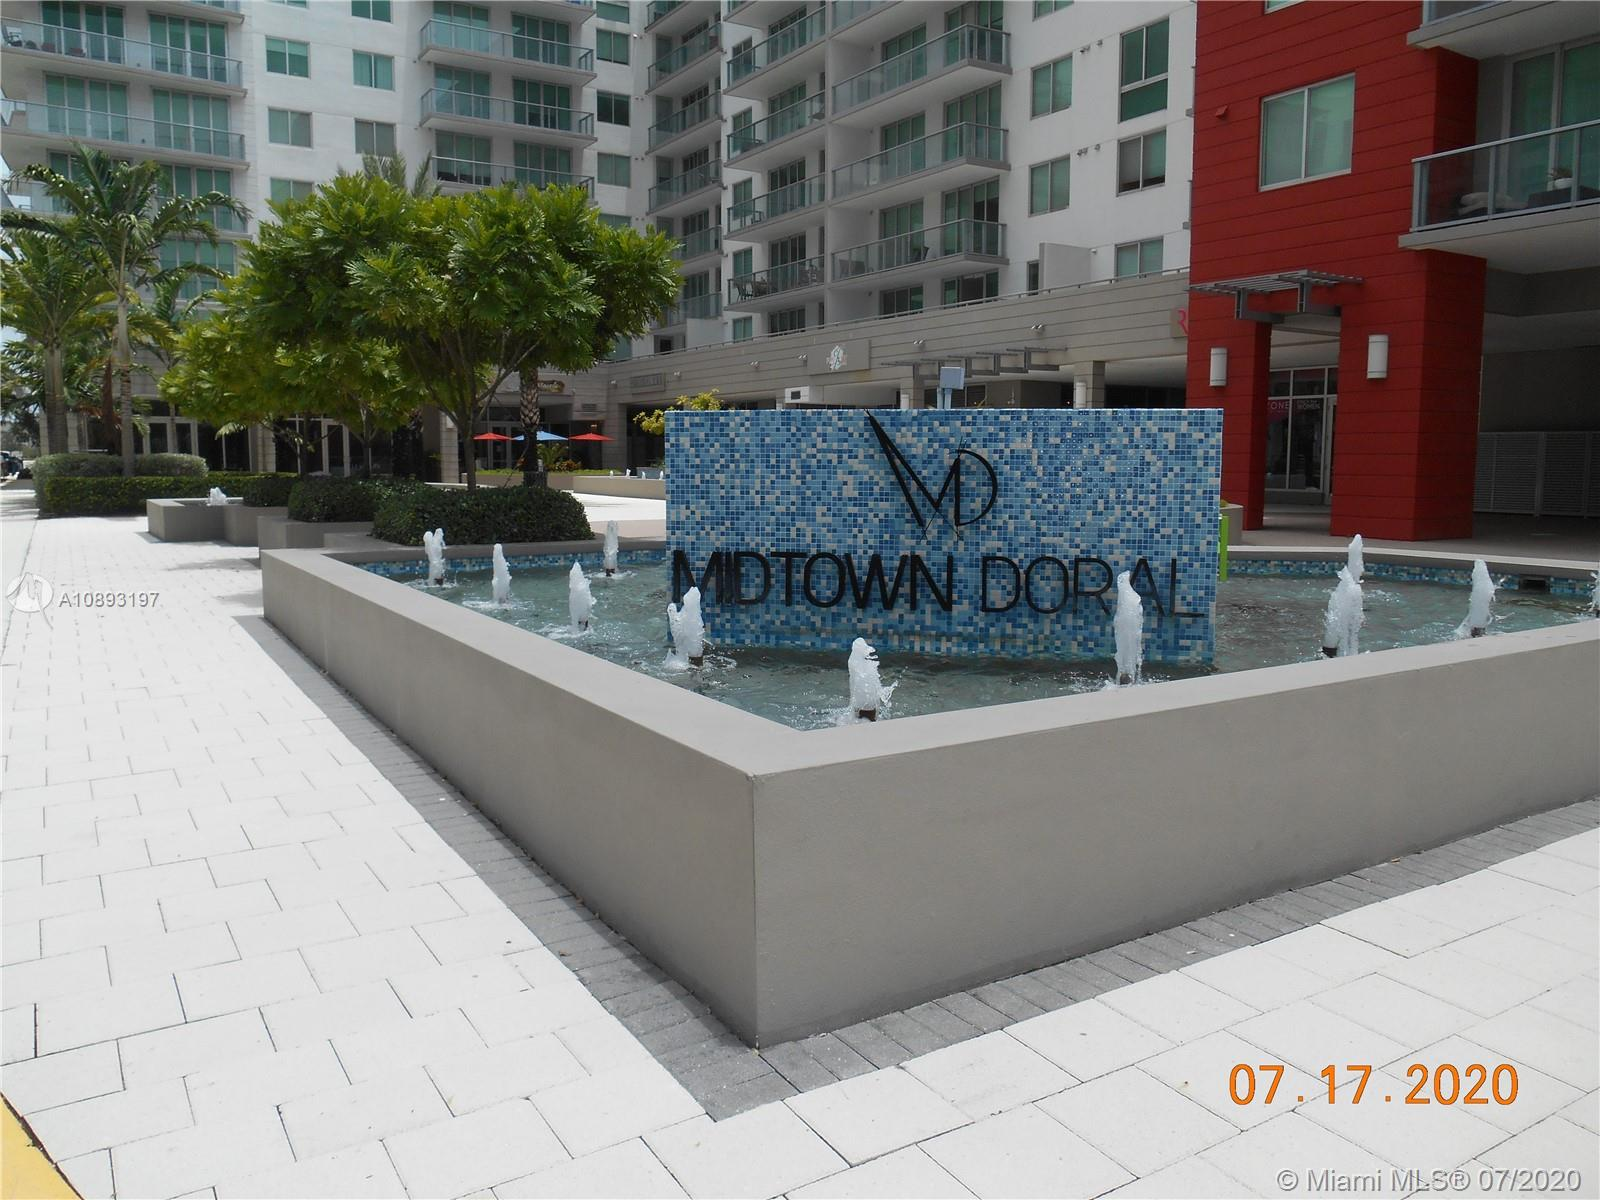 Midtown Doral - Building 1 #309 - 7661 NW 107th Ave #309, Doral, FL 33178